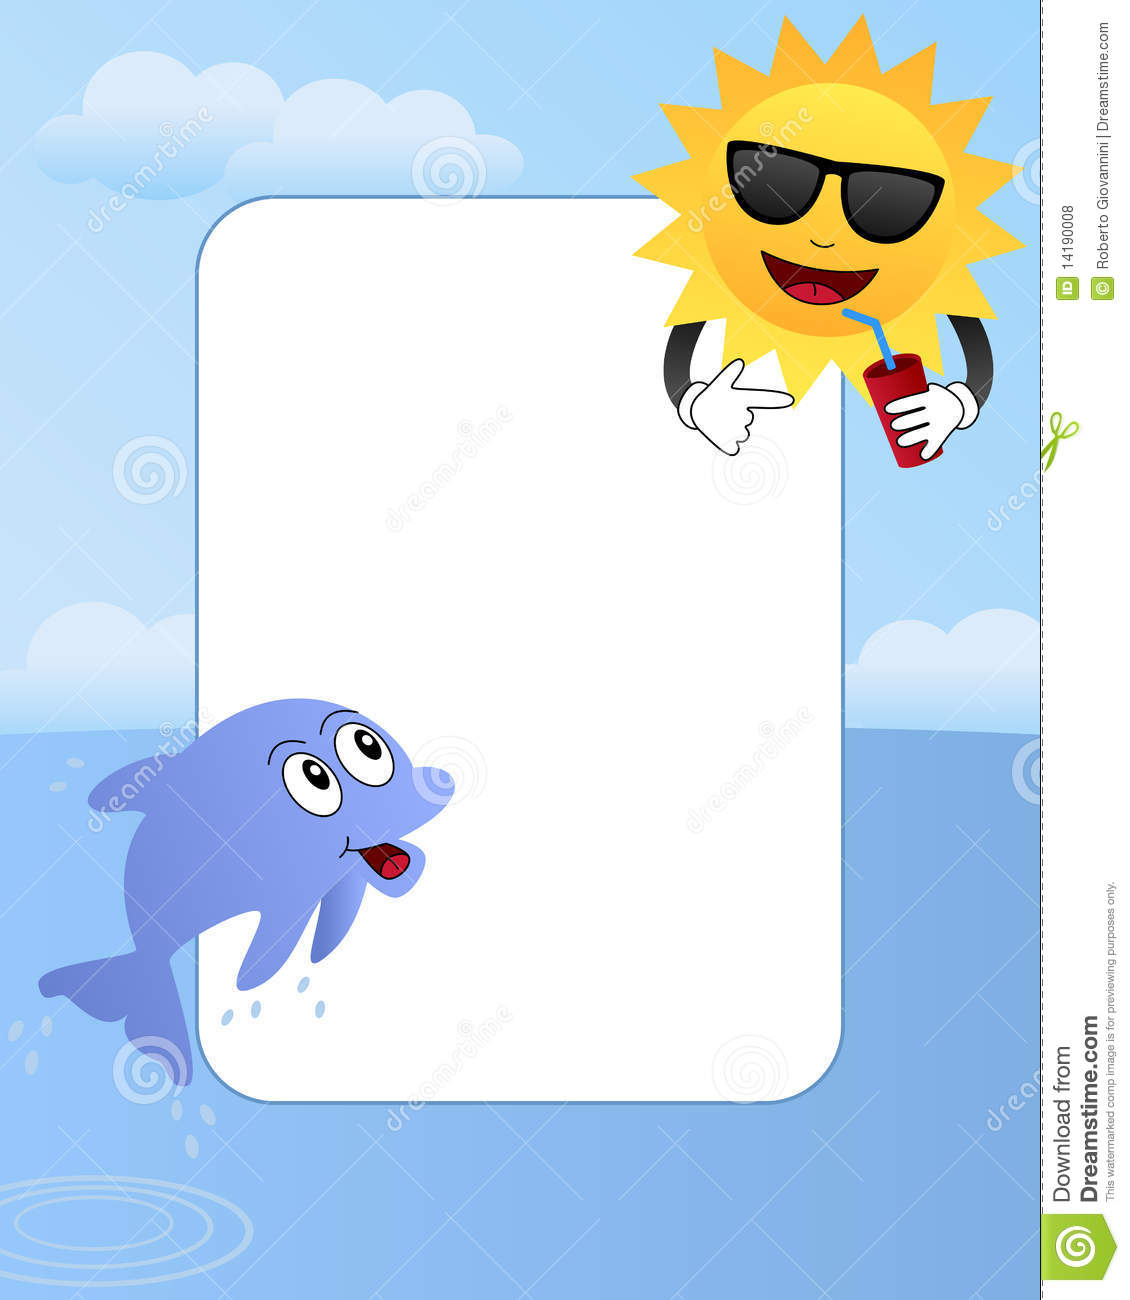 Cartoon Summer Photo Frame 2 Royalty Free Stock Photos